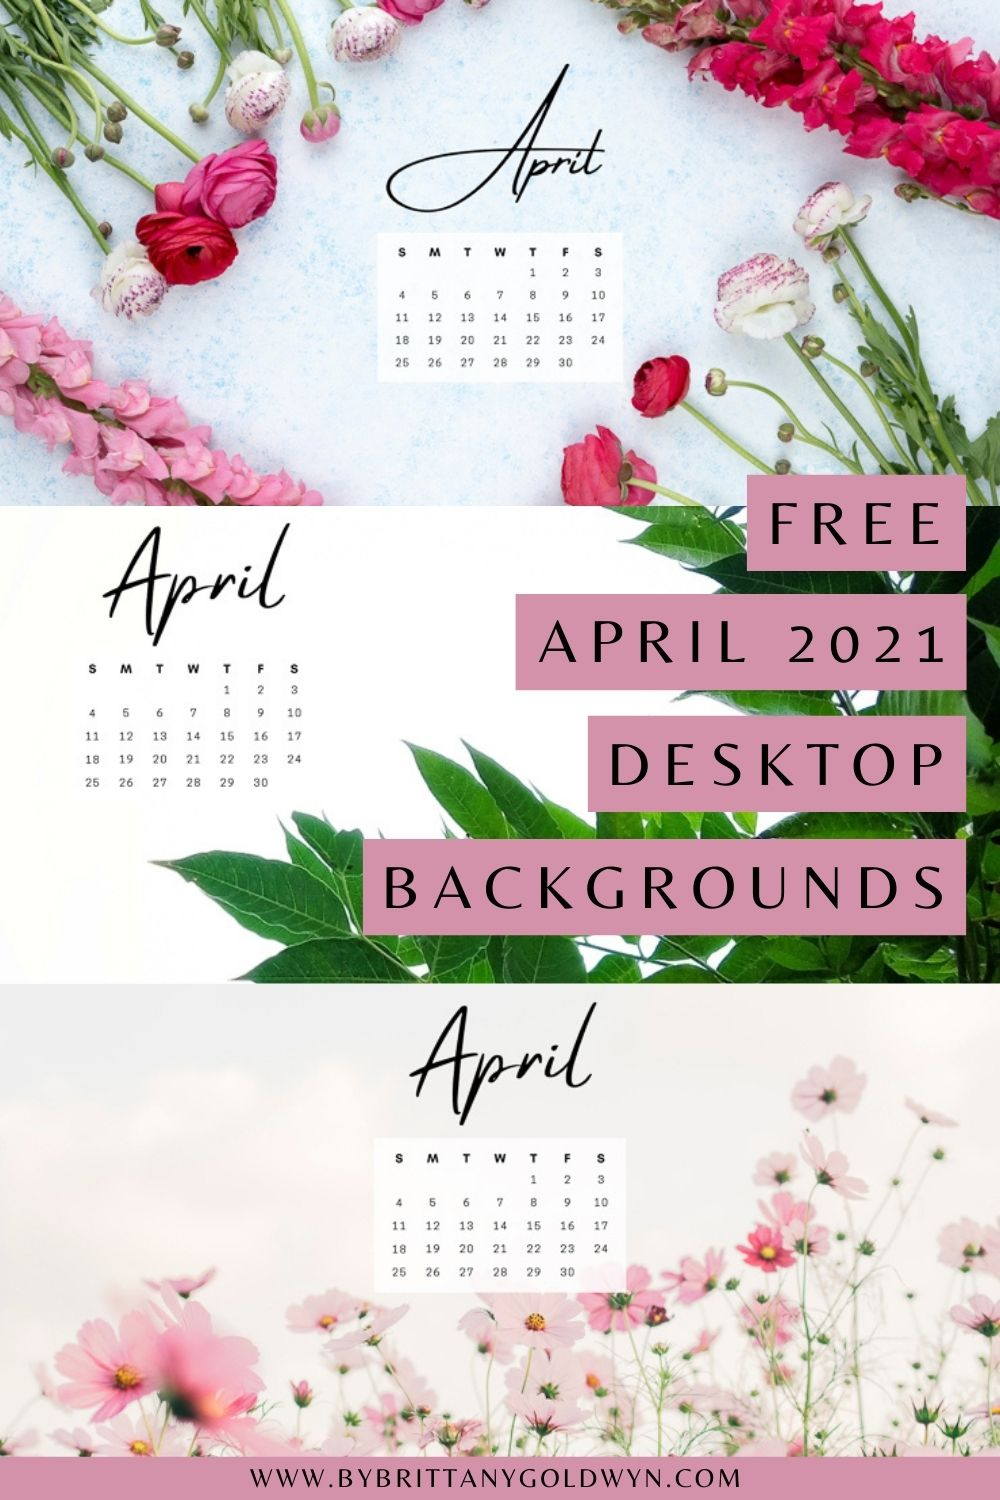 pinnable graphic with April 2021 computer desktop backgrounds and text overlay